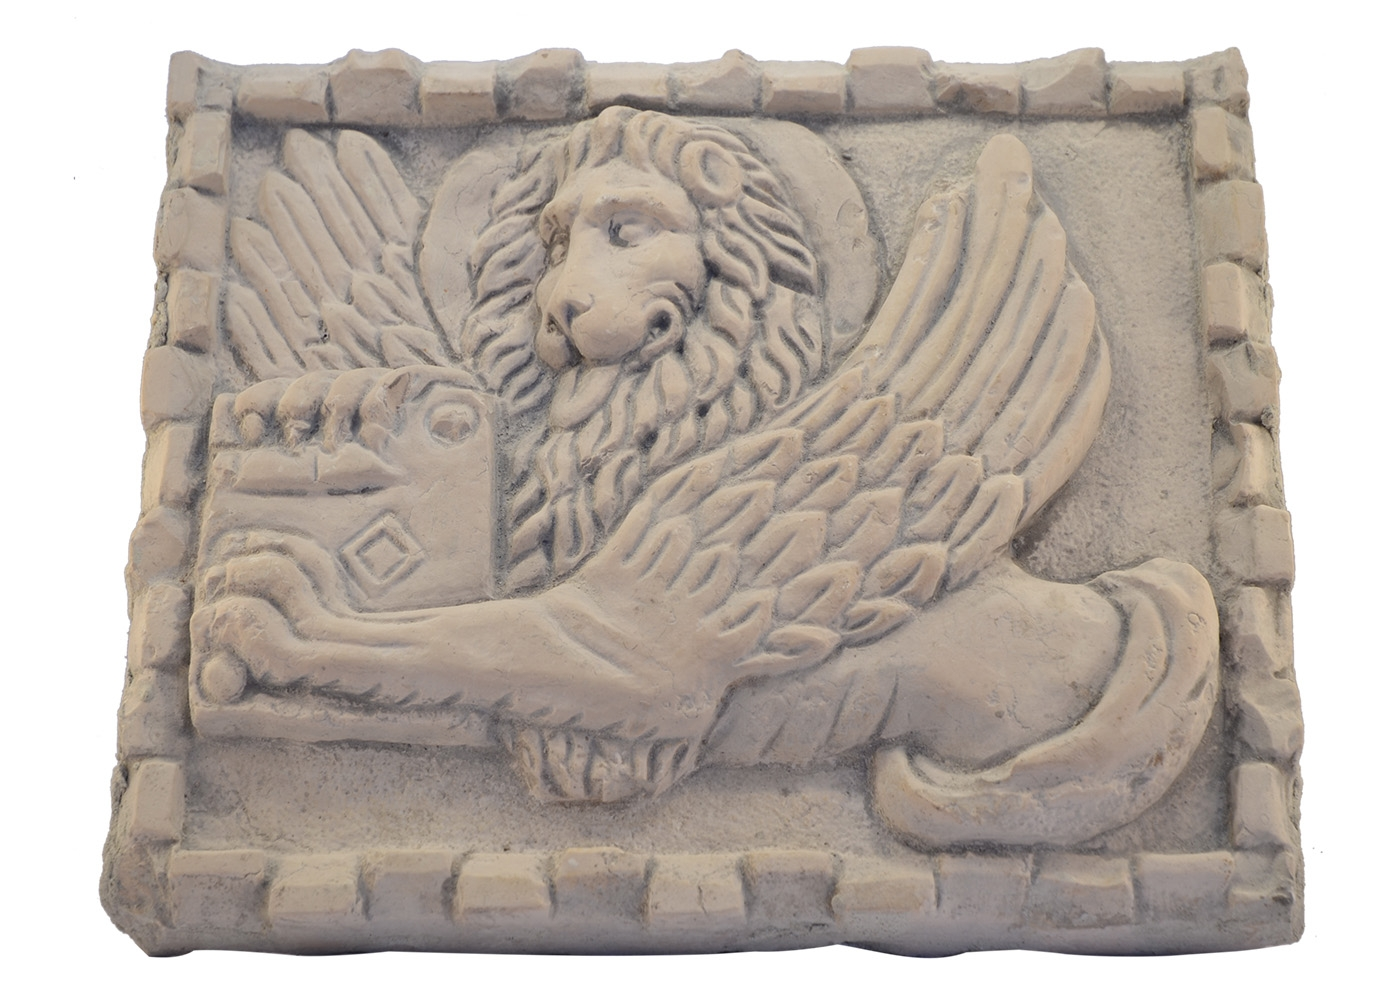 Buy Marble Panel Hand Carved Lion Saint 17457375 | Queency.co.uk